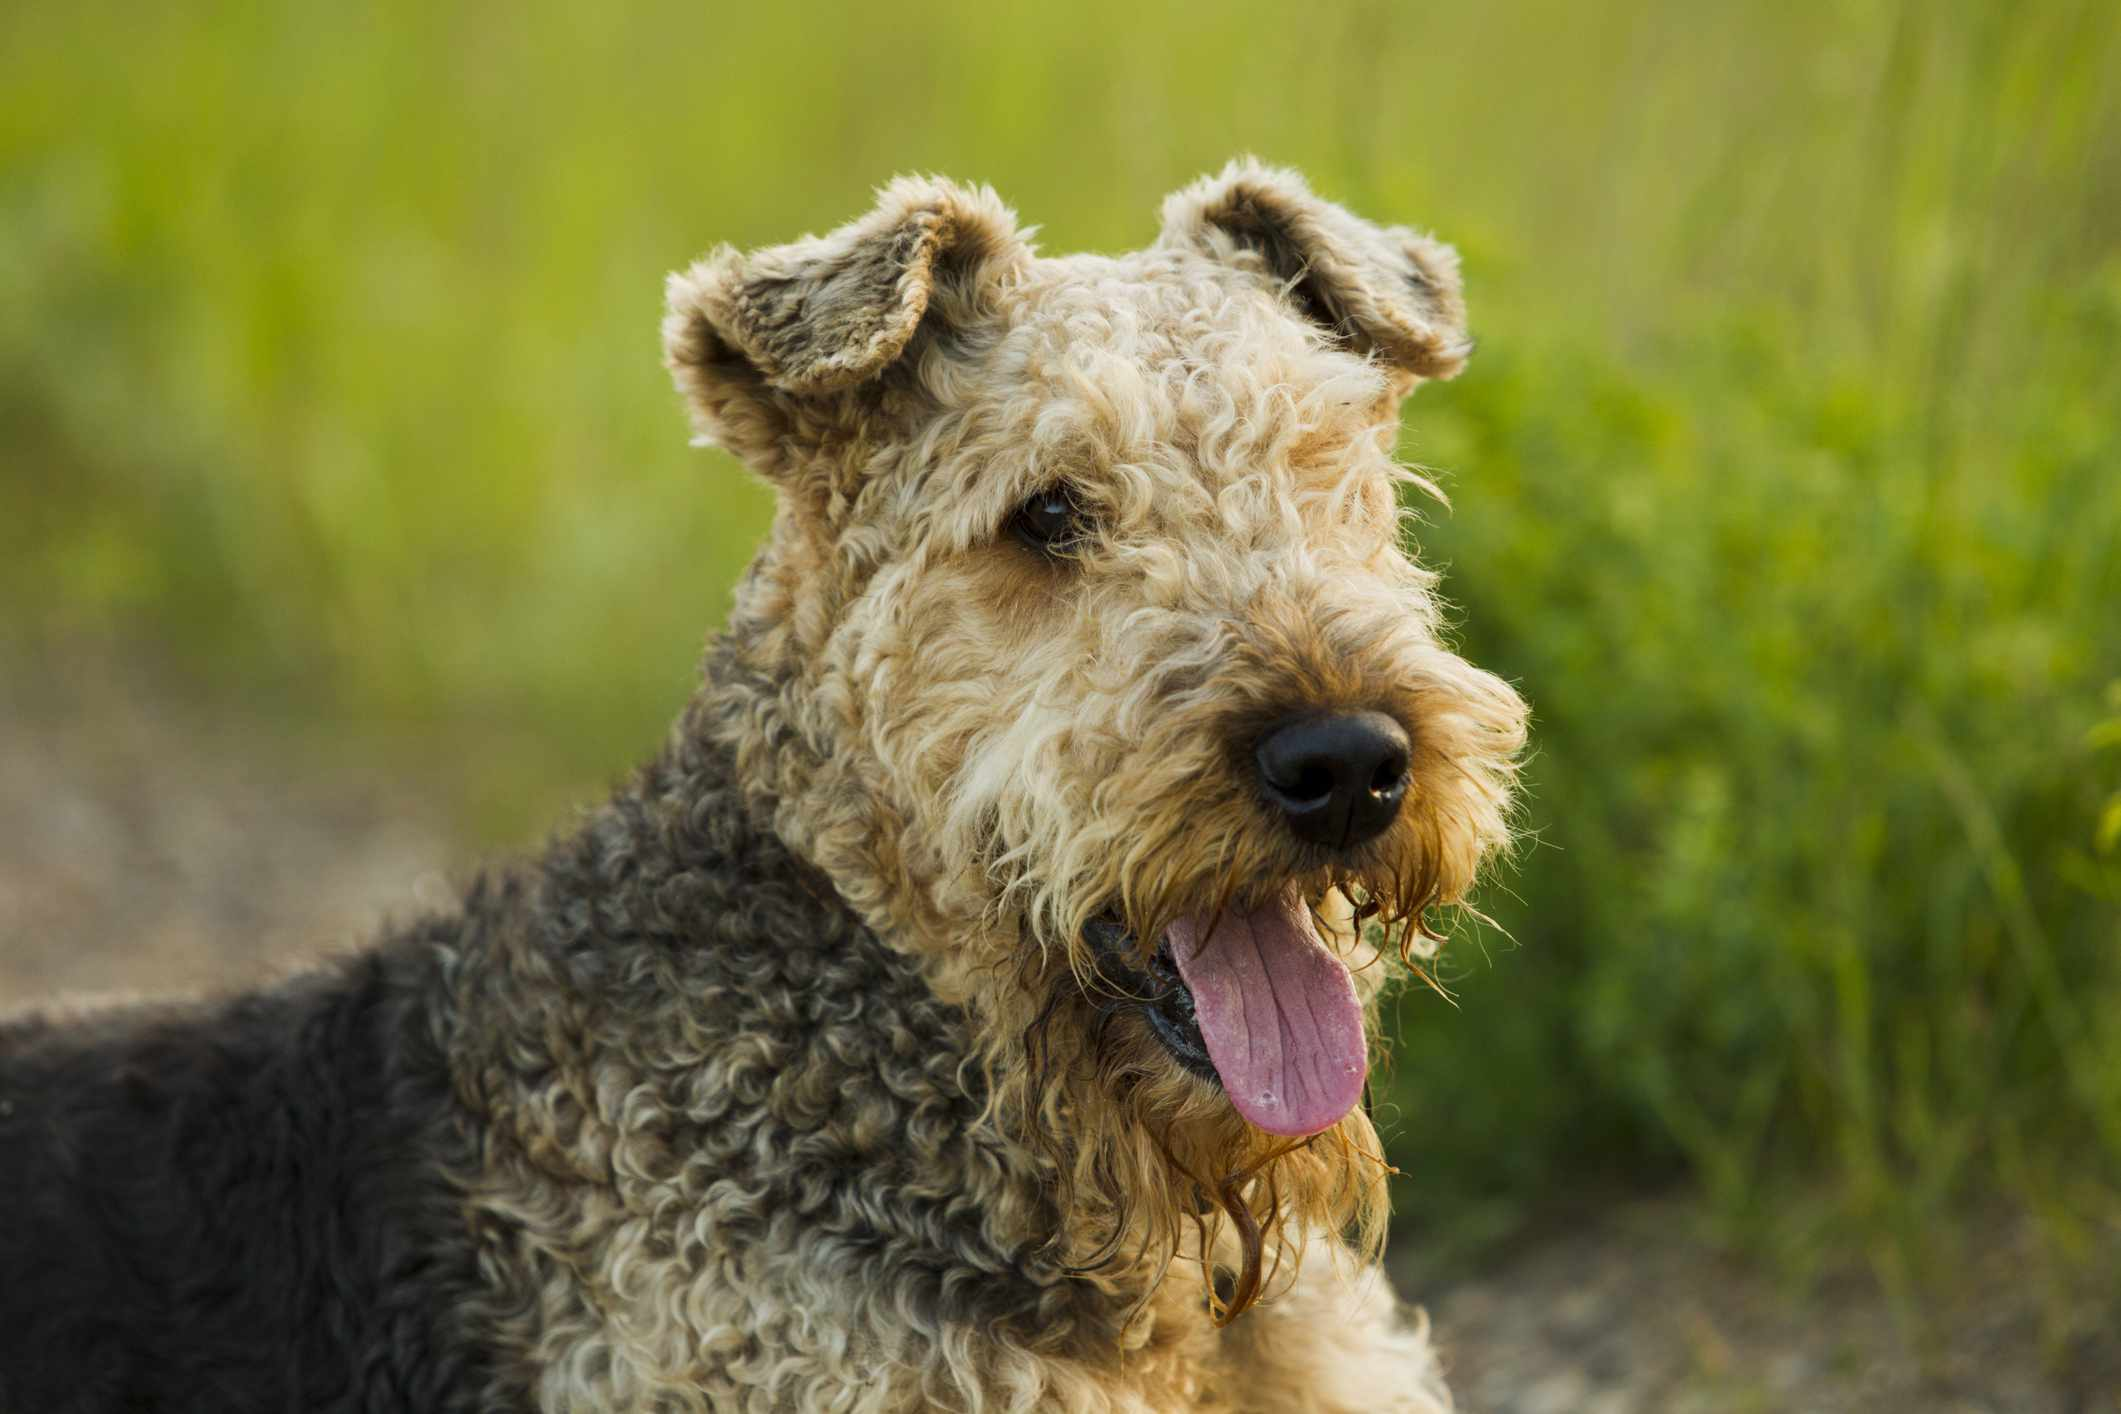 Airedale terrier up close